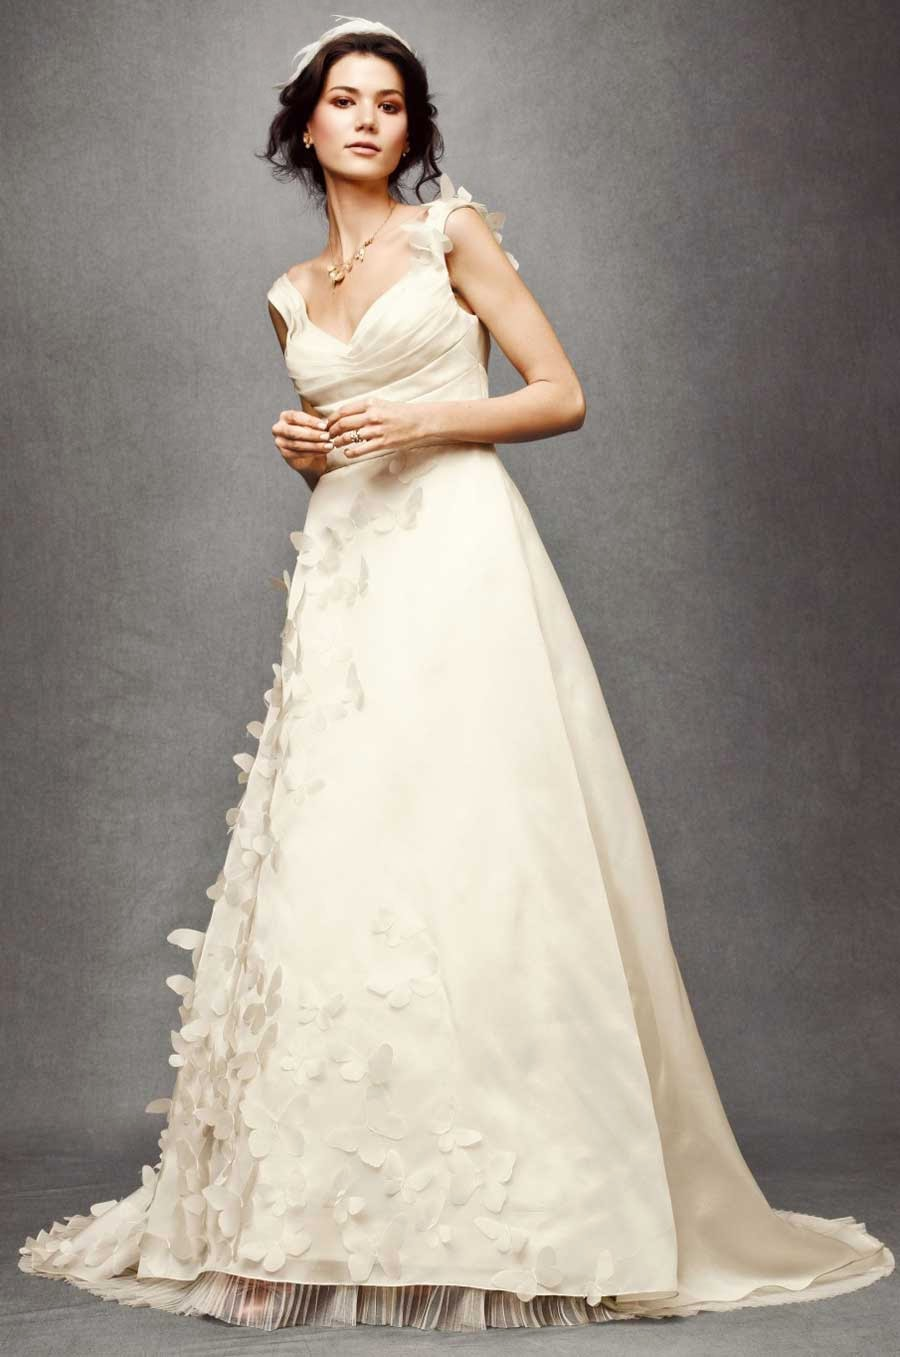 Vintage wedding dresses uk ideas photos hd for Www vintage wedding dresses